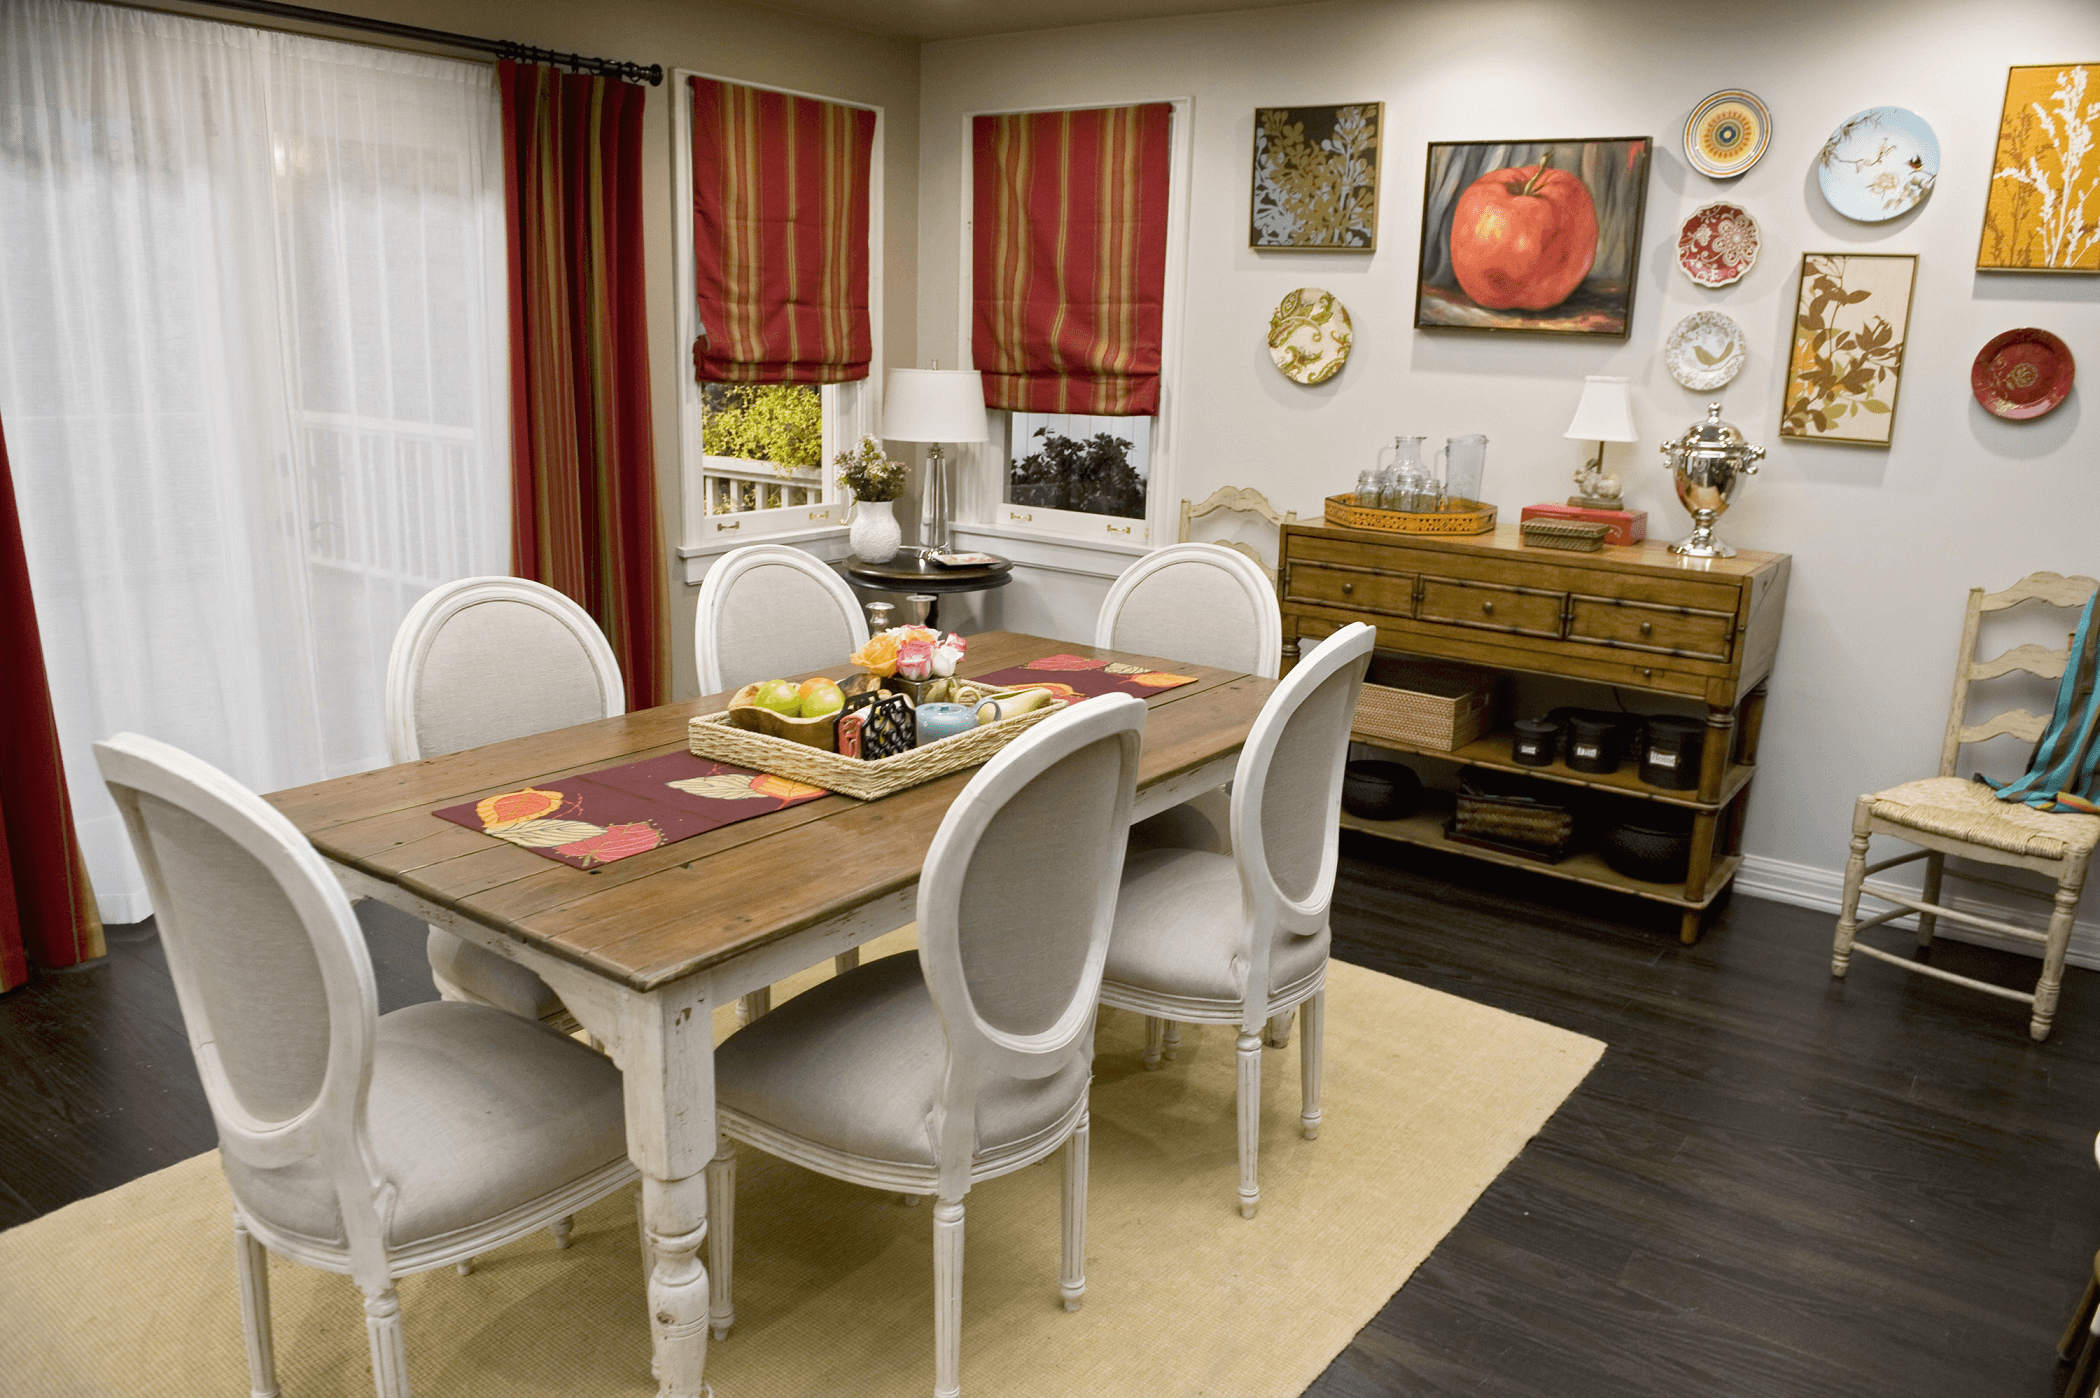 How to decorate old dining table using distract with chairs